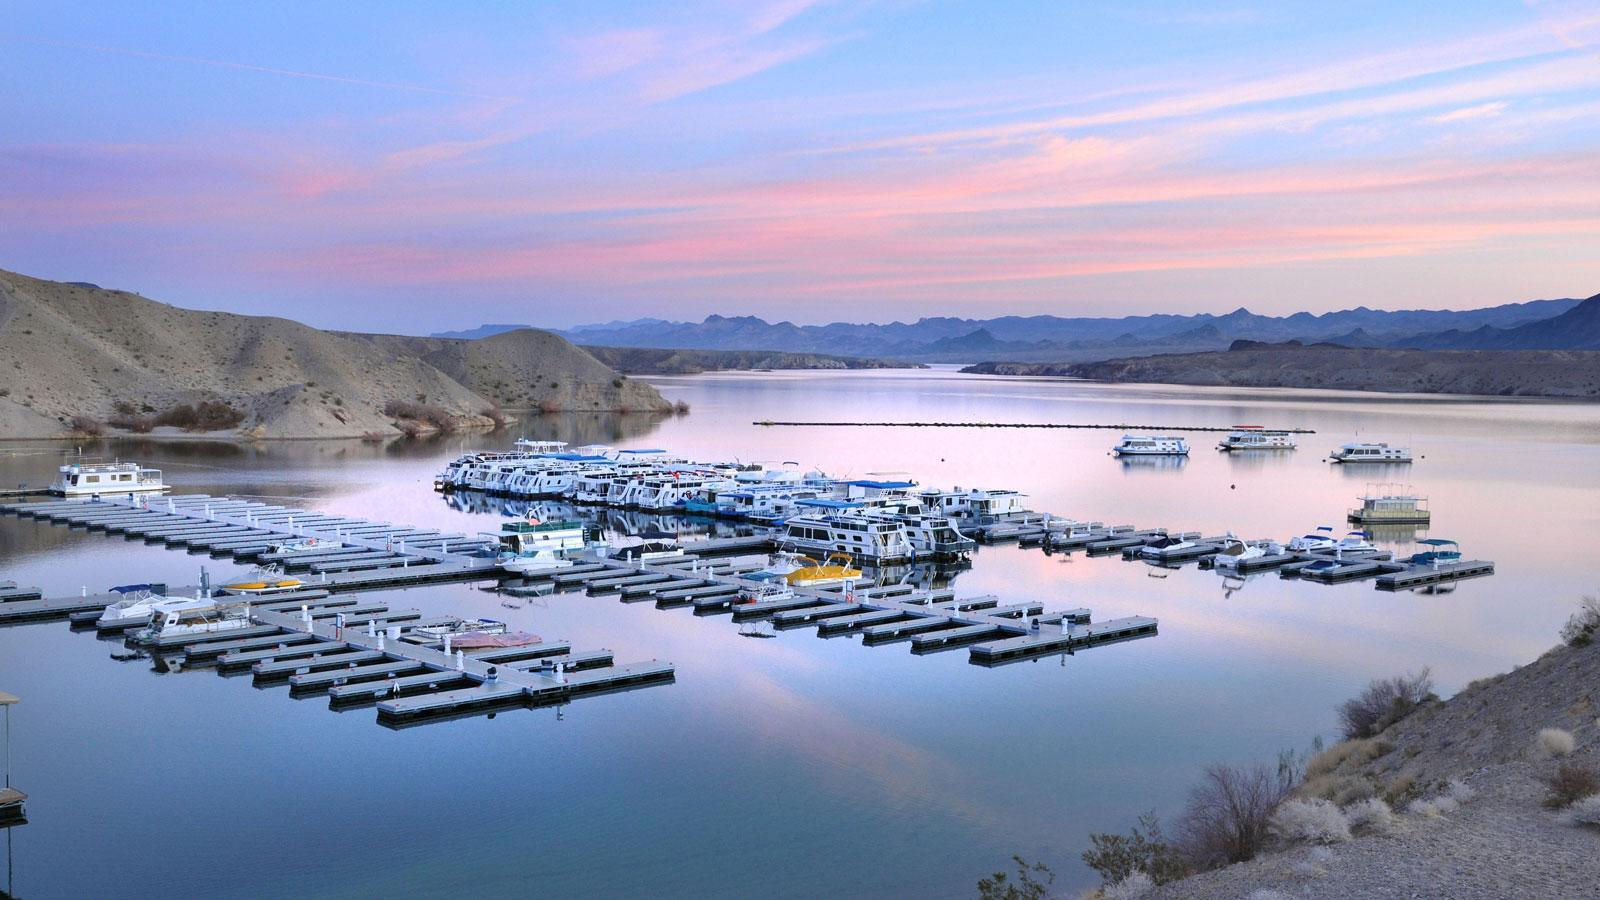 Morning Calm at Cottonwood Cove, Lake Mohave